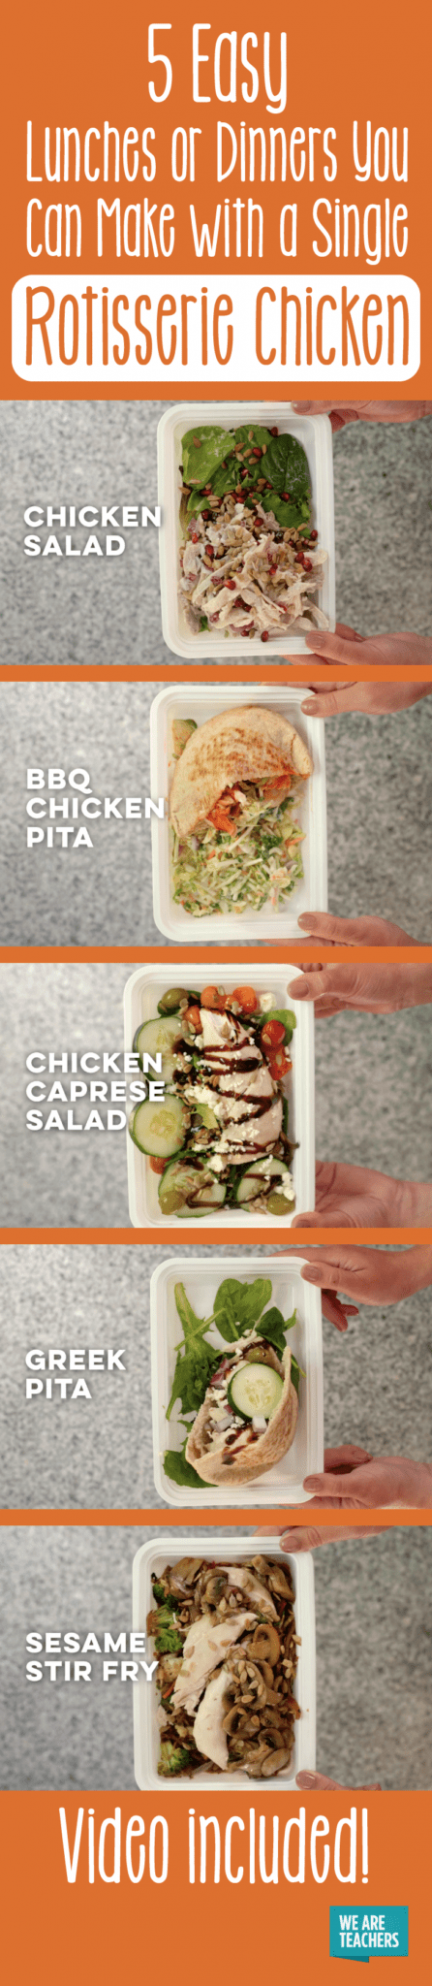 13 Easy Rotisserie Chicken Recipes for a Healthy Lunch at Work